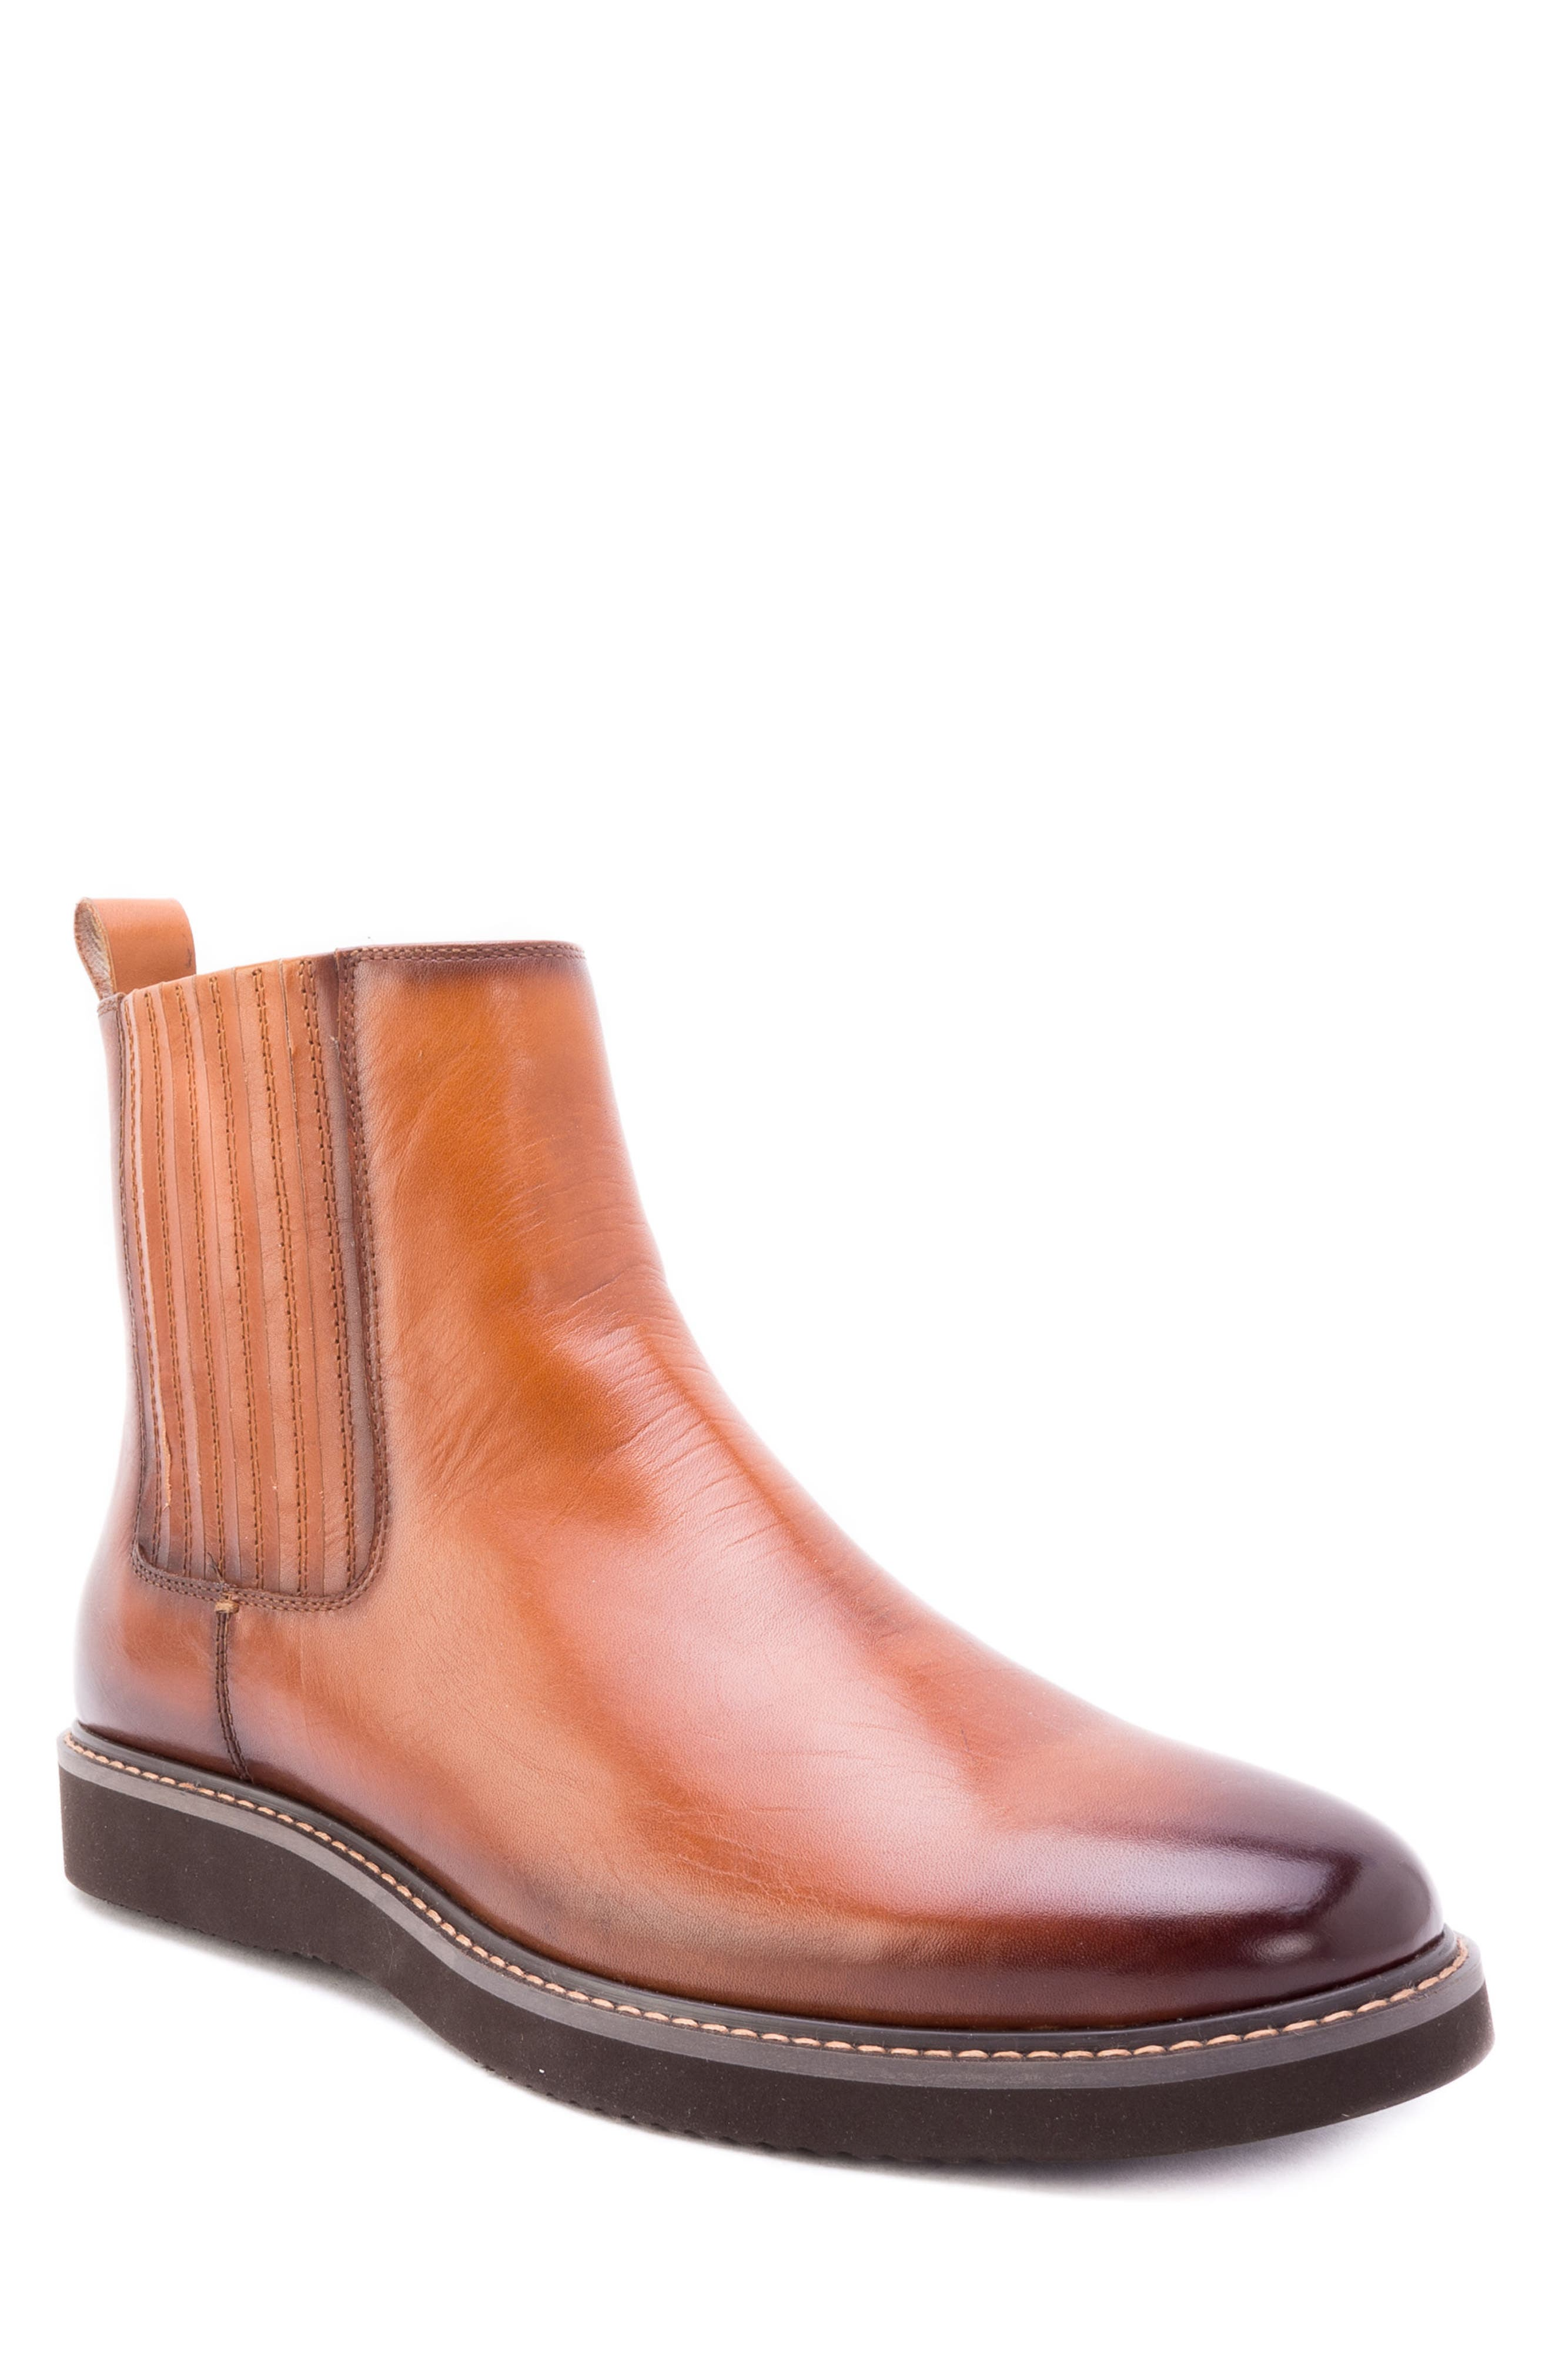 Zanzara Warlow Chelsea Boot- Brown